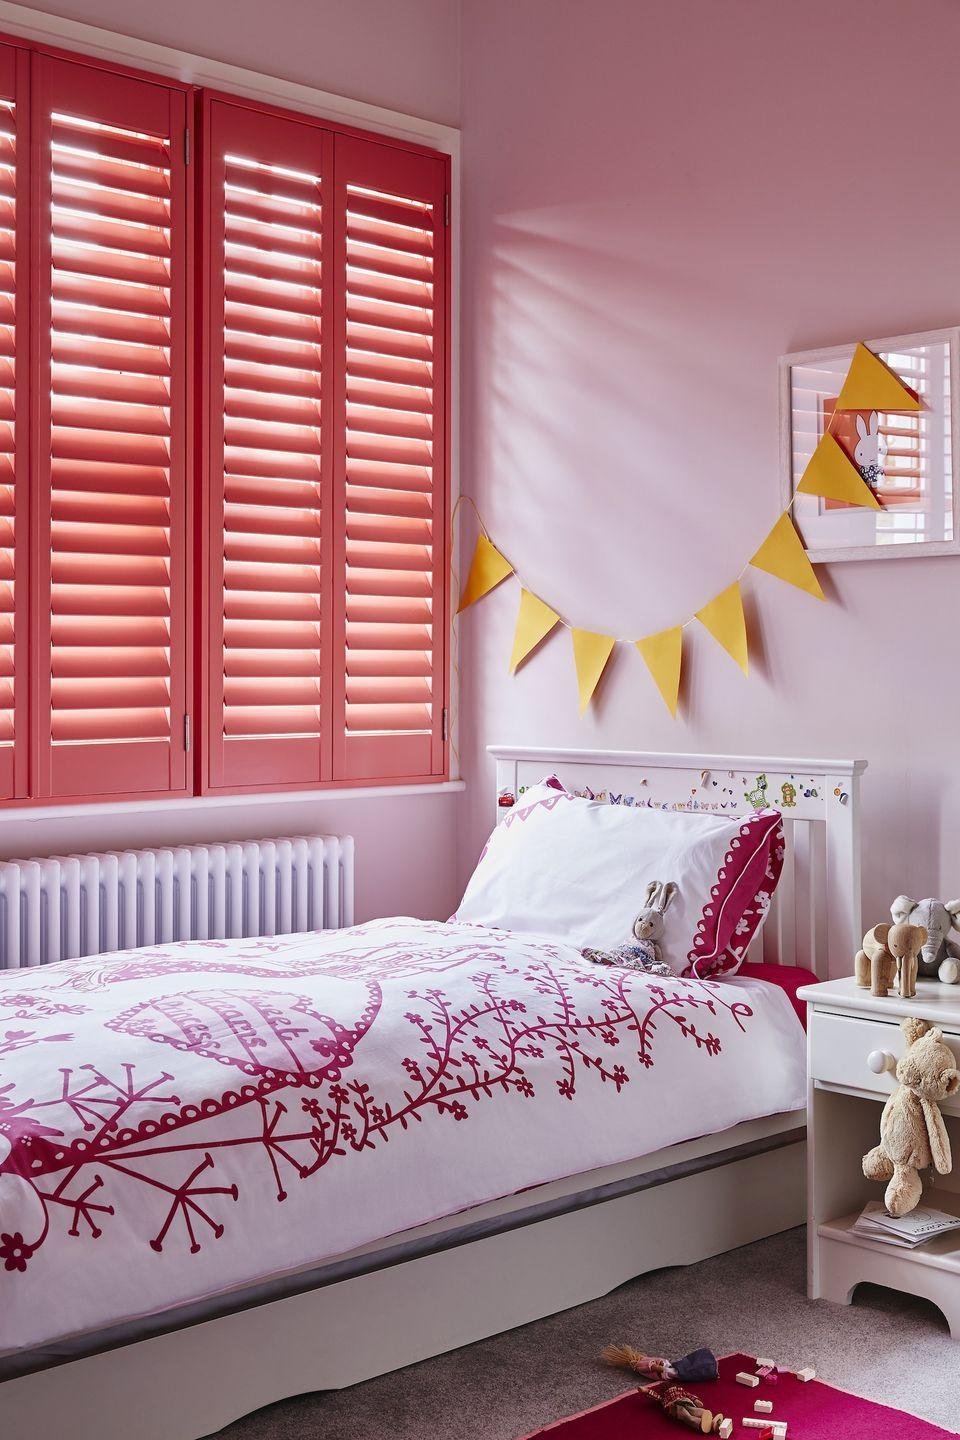 """<p>Shutters are a great way to add a burst of colour to an otherwise neutral scheme, or to add a punchier look to an existing group of colours. They're great for privacy and you can adjust the amount of light that comes through. It also works well during the warmer months to add shade and keep the bedroom cool. For a girl's bedroom, use colours in similar tones as shown here to keep the room vibrant.</p><p>Pictured: Full height shutters, <a href=""""https://www.shutterlyfabulous.com/shutters/full-height-shutters/"""" rel=""""nofollow noopener"""" target=""""_blank"""" data-ylk=""""slk:Shutterly Fabulous"""" class=""""link rapid-noclick-resp"""">Shutterly Fabulous</a></p>"""